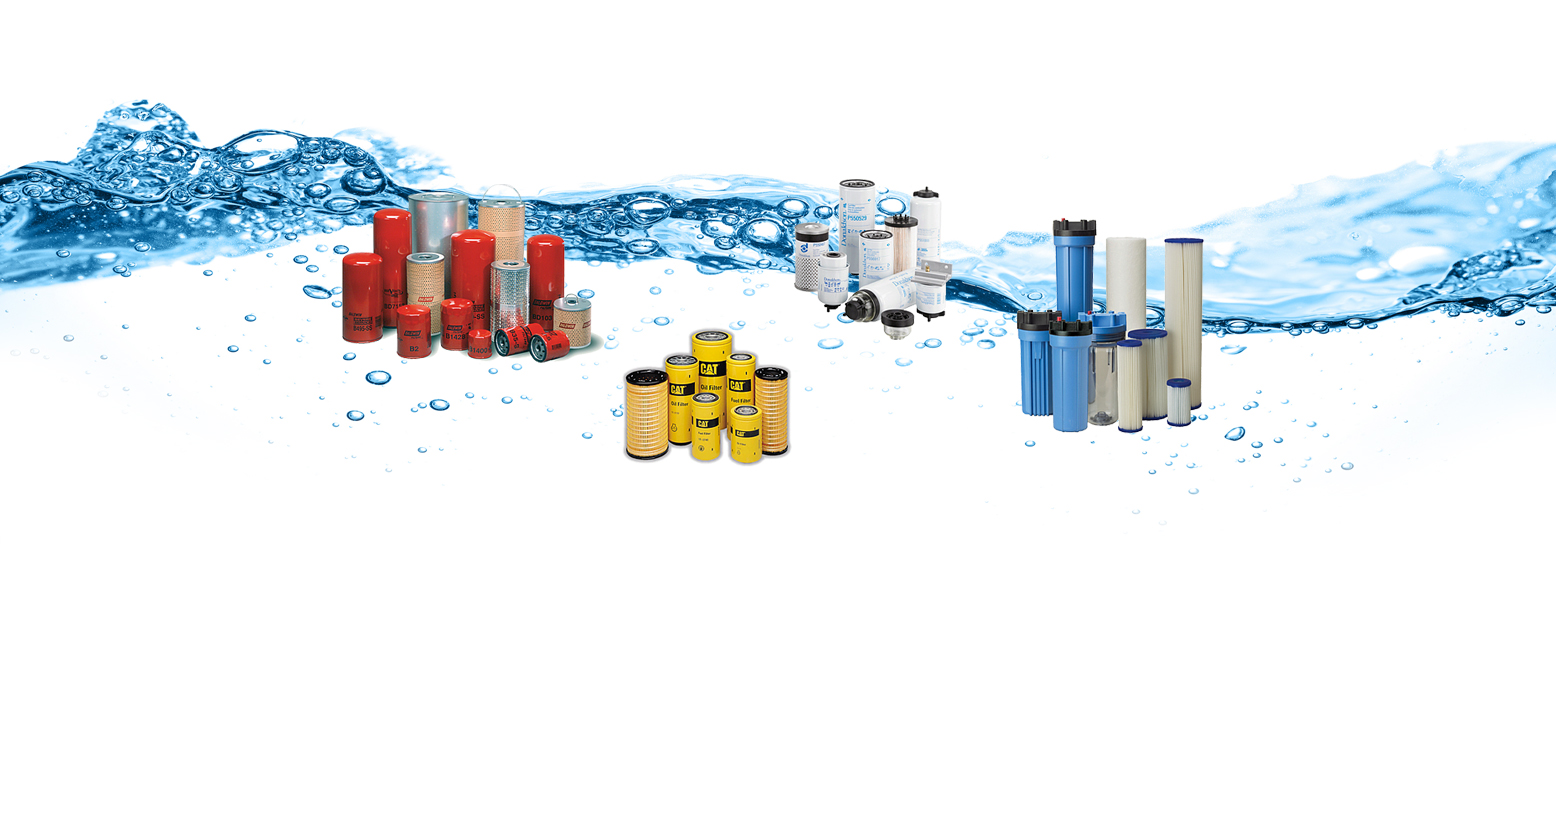 Singapore Hydraulic, Lube Oil, Pneumatic, Exhaust, EDM, Water, Fuel